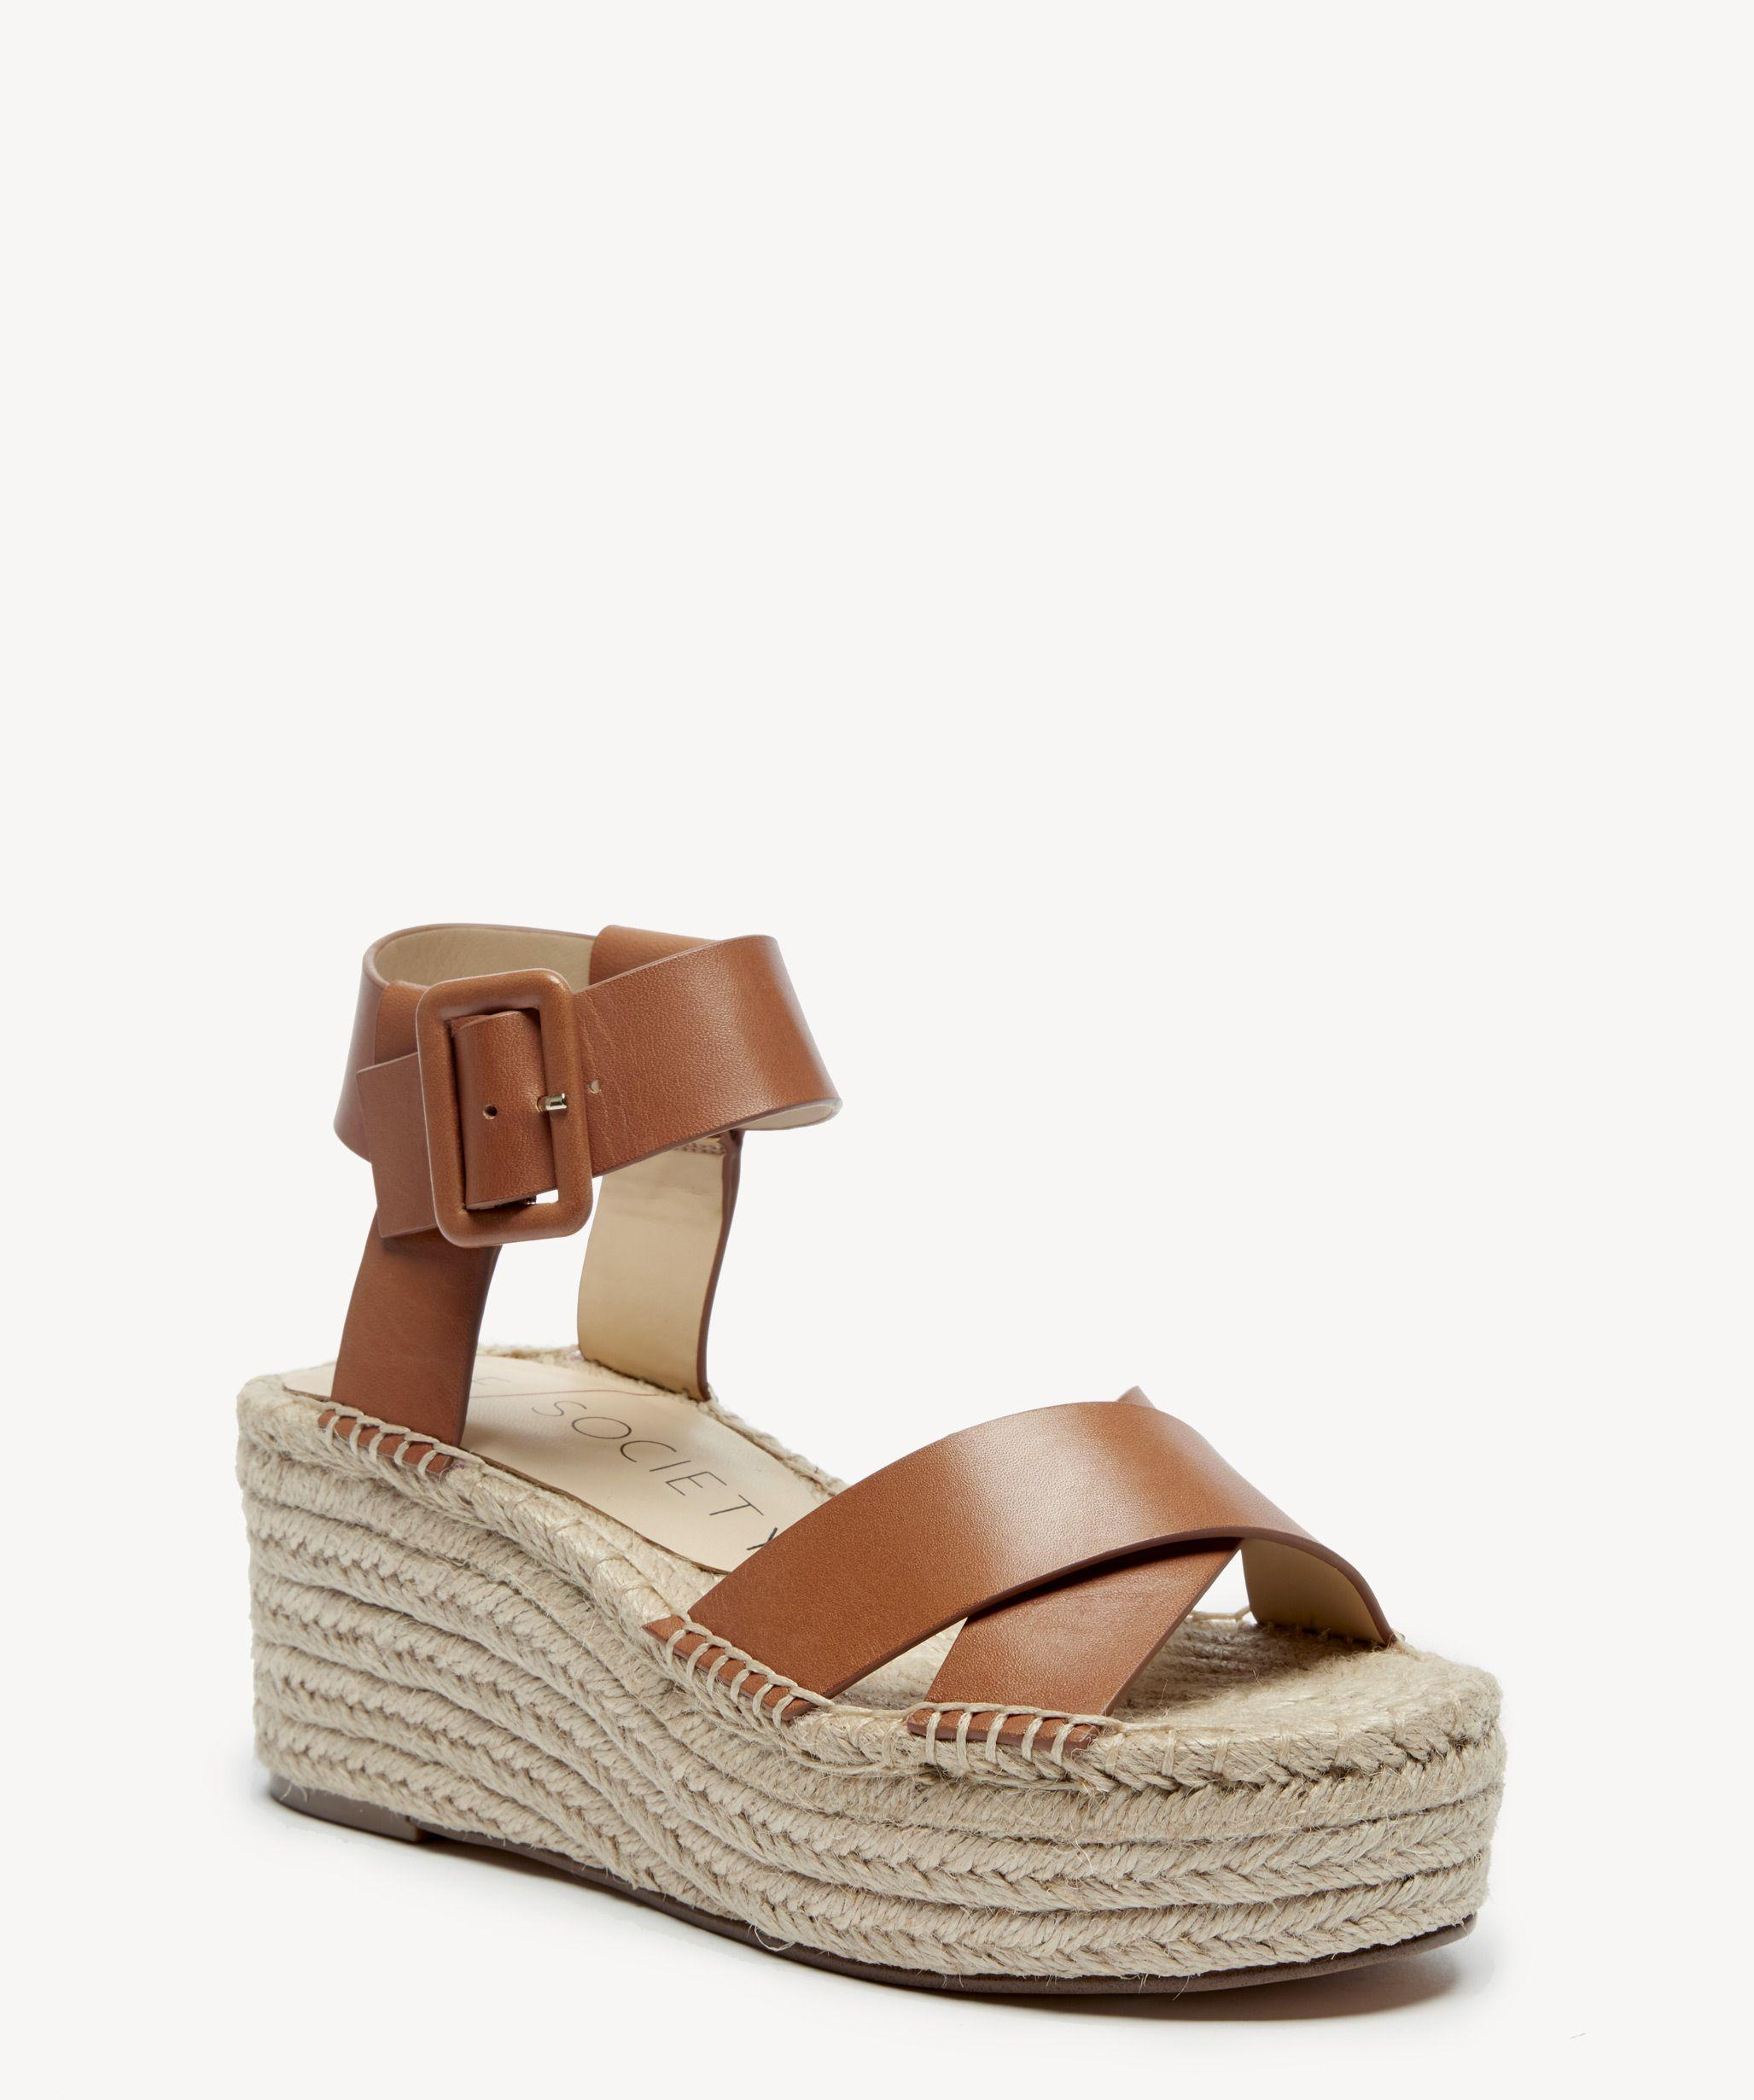 fad547c0bad Lyst - Sole Society Audrina Flatform Espadrille in Brown